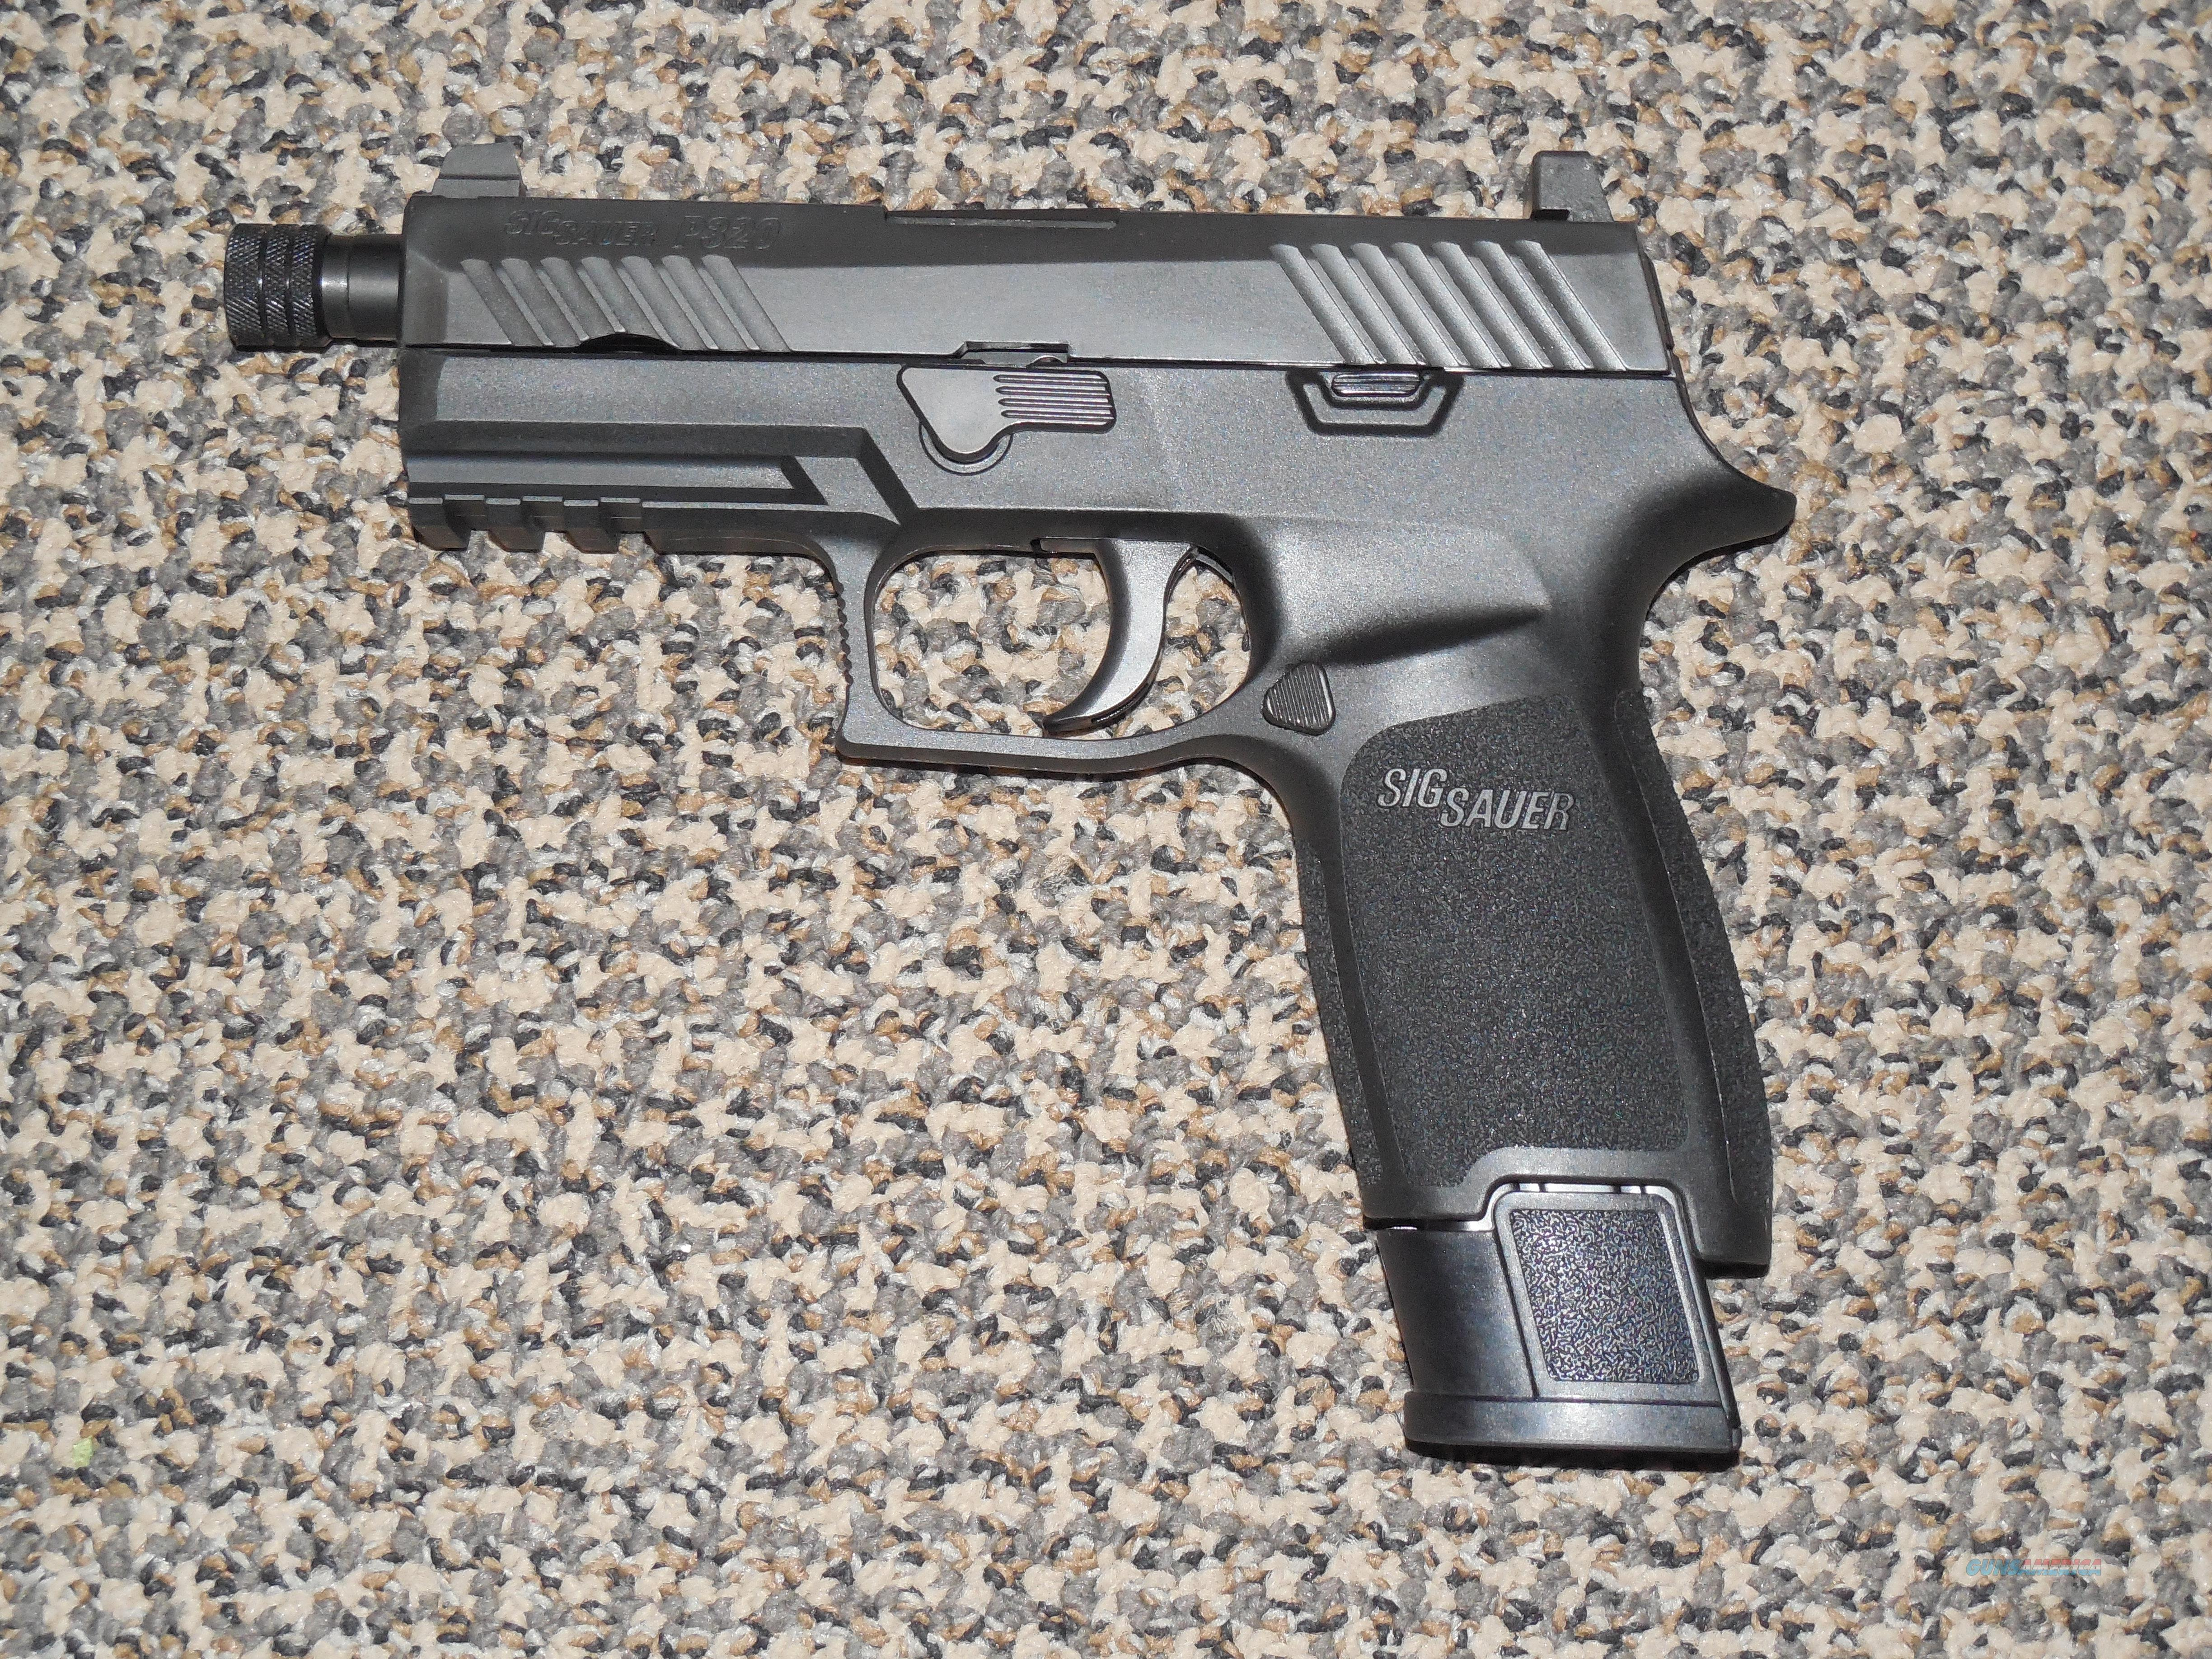 SIG SAUER P-320 TACOPS 9 MM WITH FOUR  21-RD MAGAZINES, HIGH NIGHT SIGHTS AND THREADED BARREL - REDUCED  Guns > Pistols > Sig - Sauer/Sigarms Pistols > P320